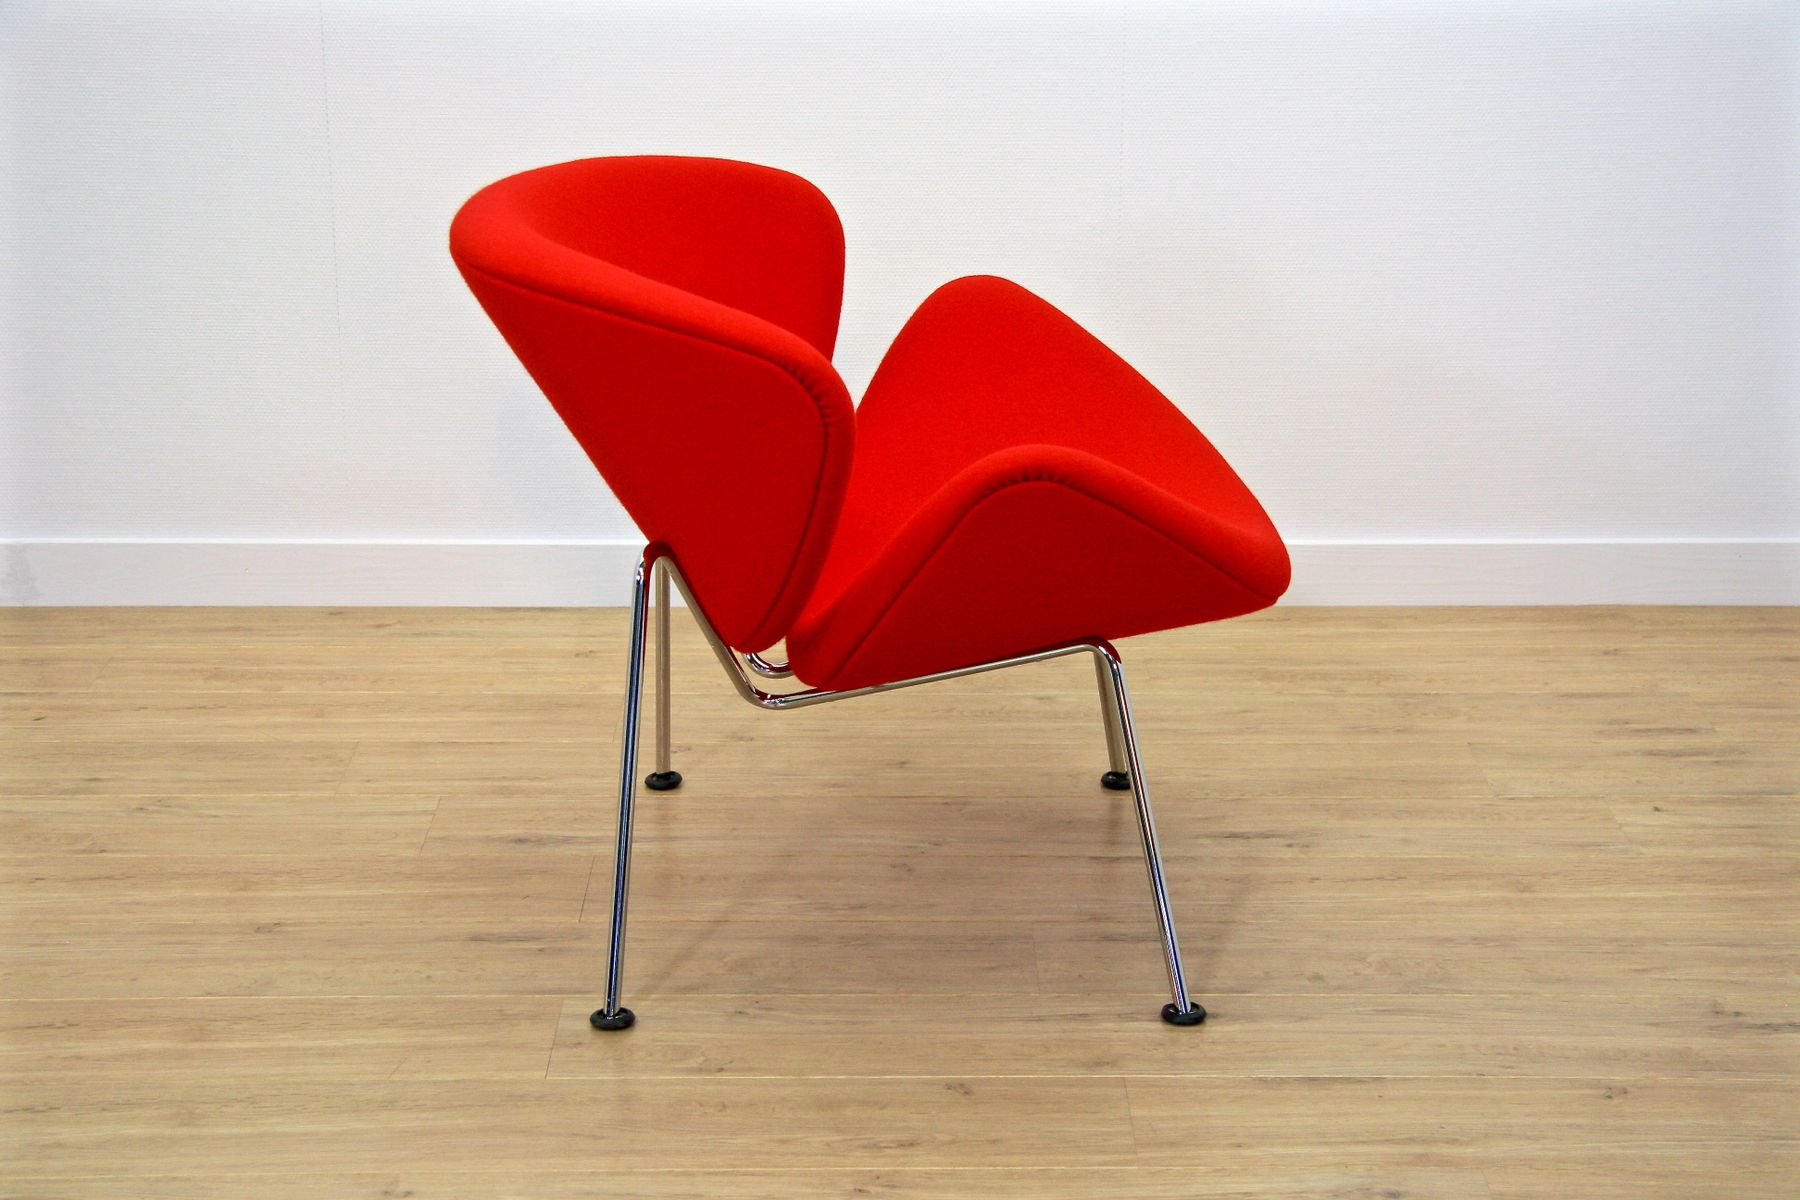 Red f437 orange slice chair by pierre paulin for artifort for 1980s chair